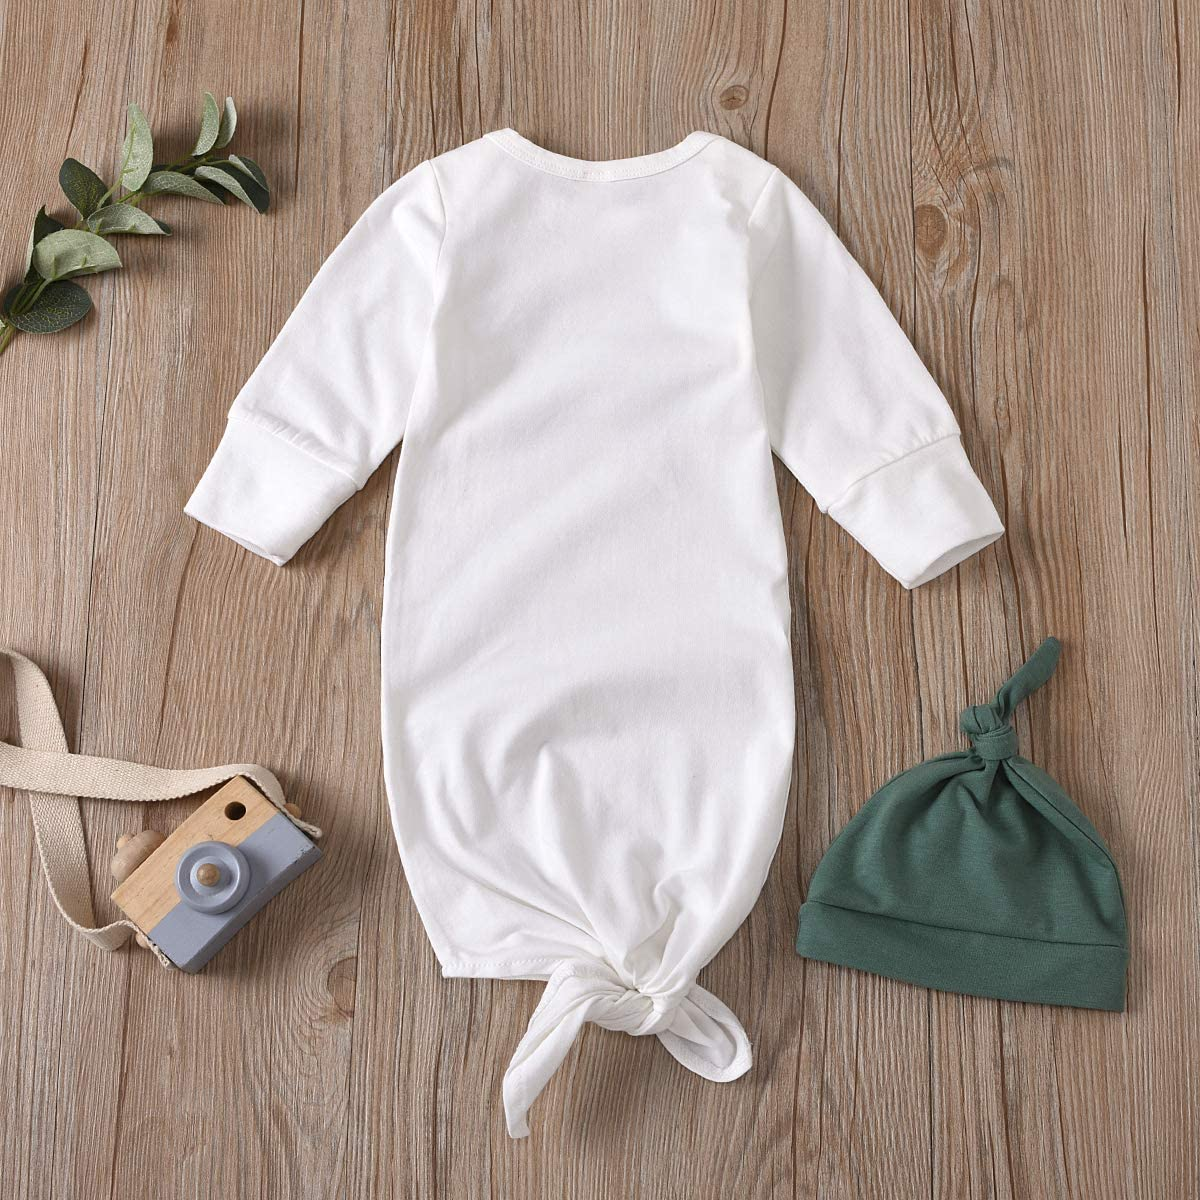 Newborn Unisex Baby Gown Sleeping Bag Rainbow Print Cotton Knotted Sleepwear Long Sleeve Nightgown Outfits Hat Set